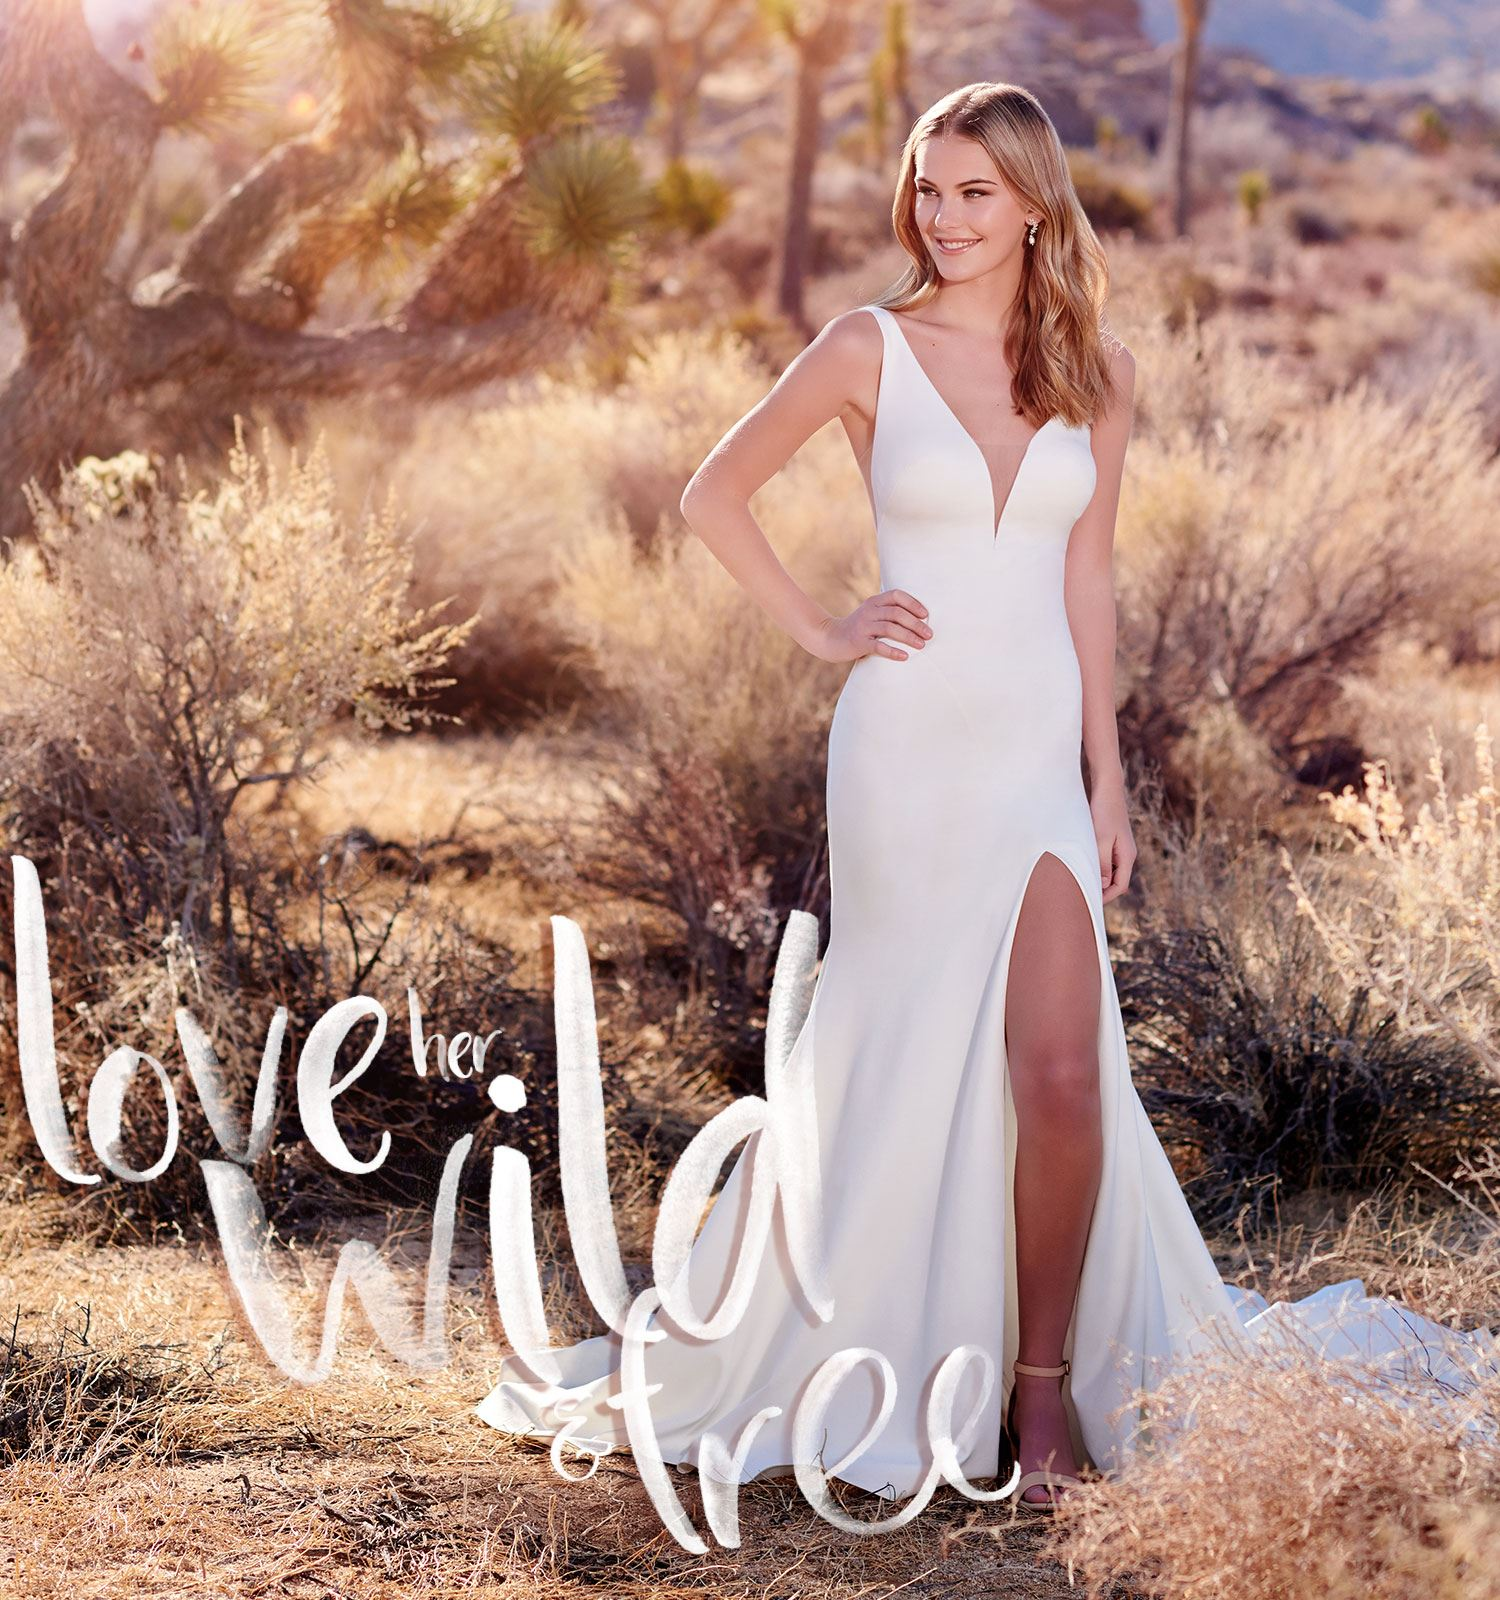 mobile blonde models in white wedding dresses in field